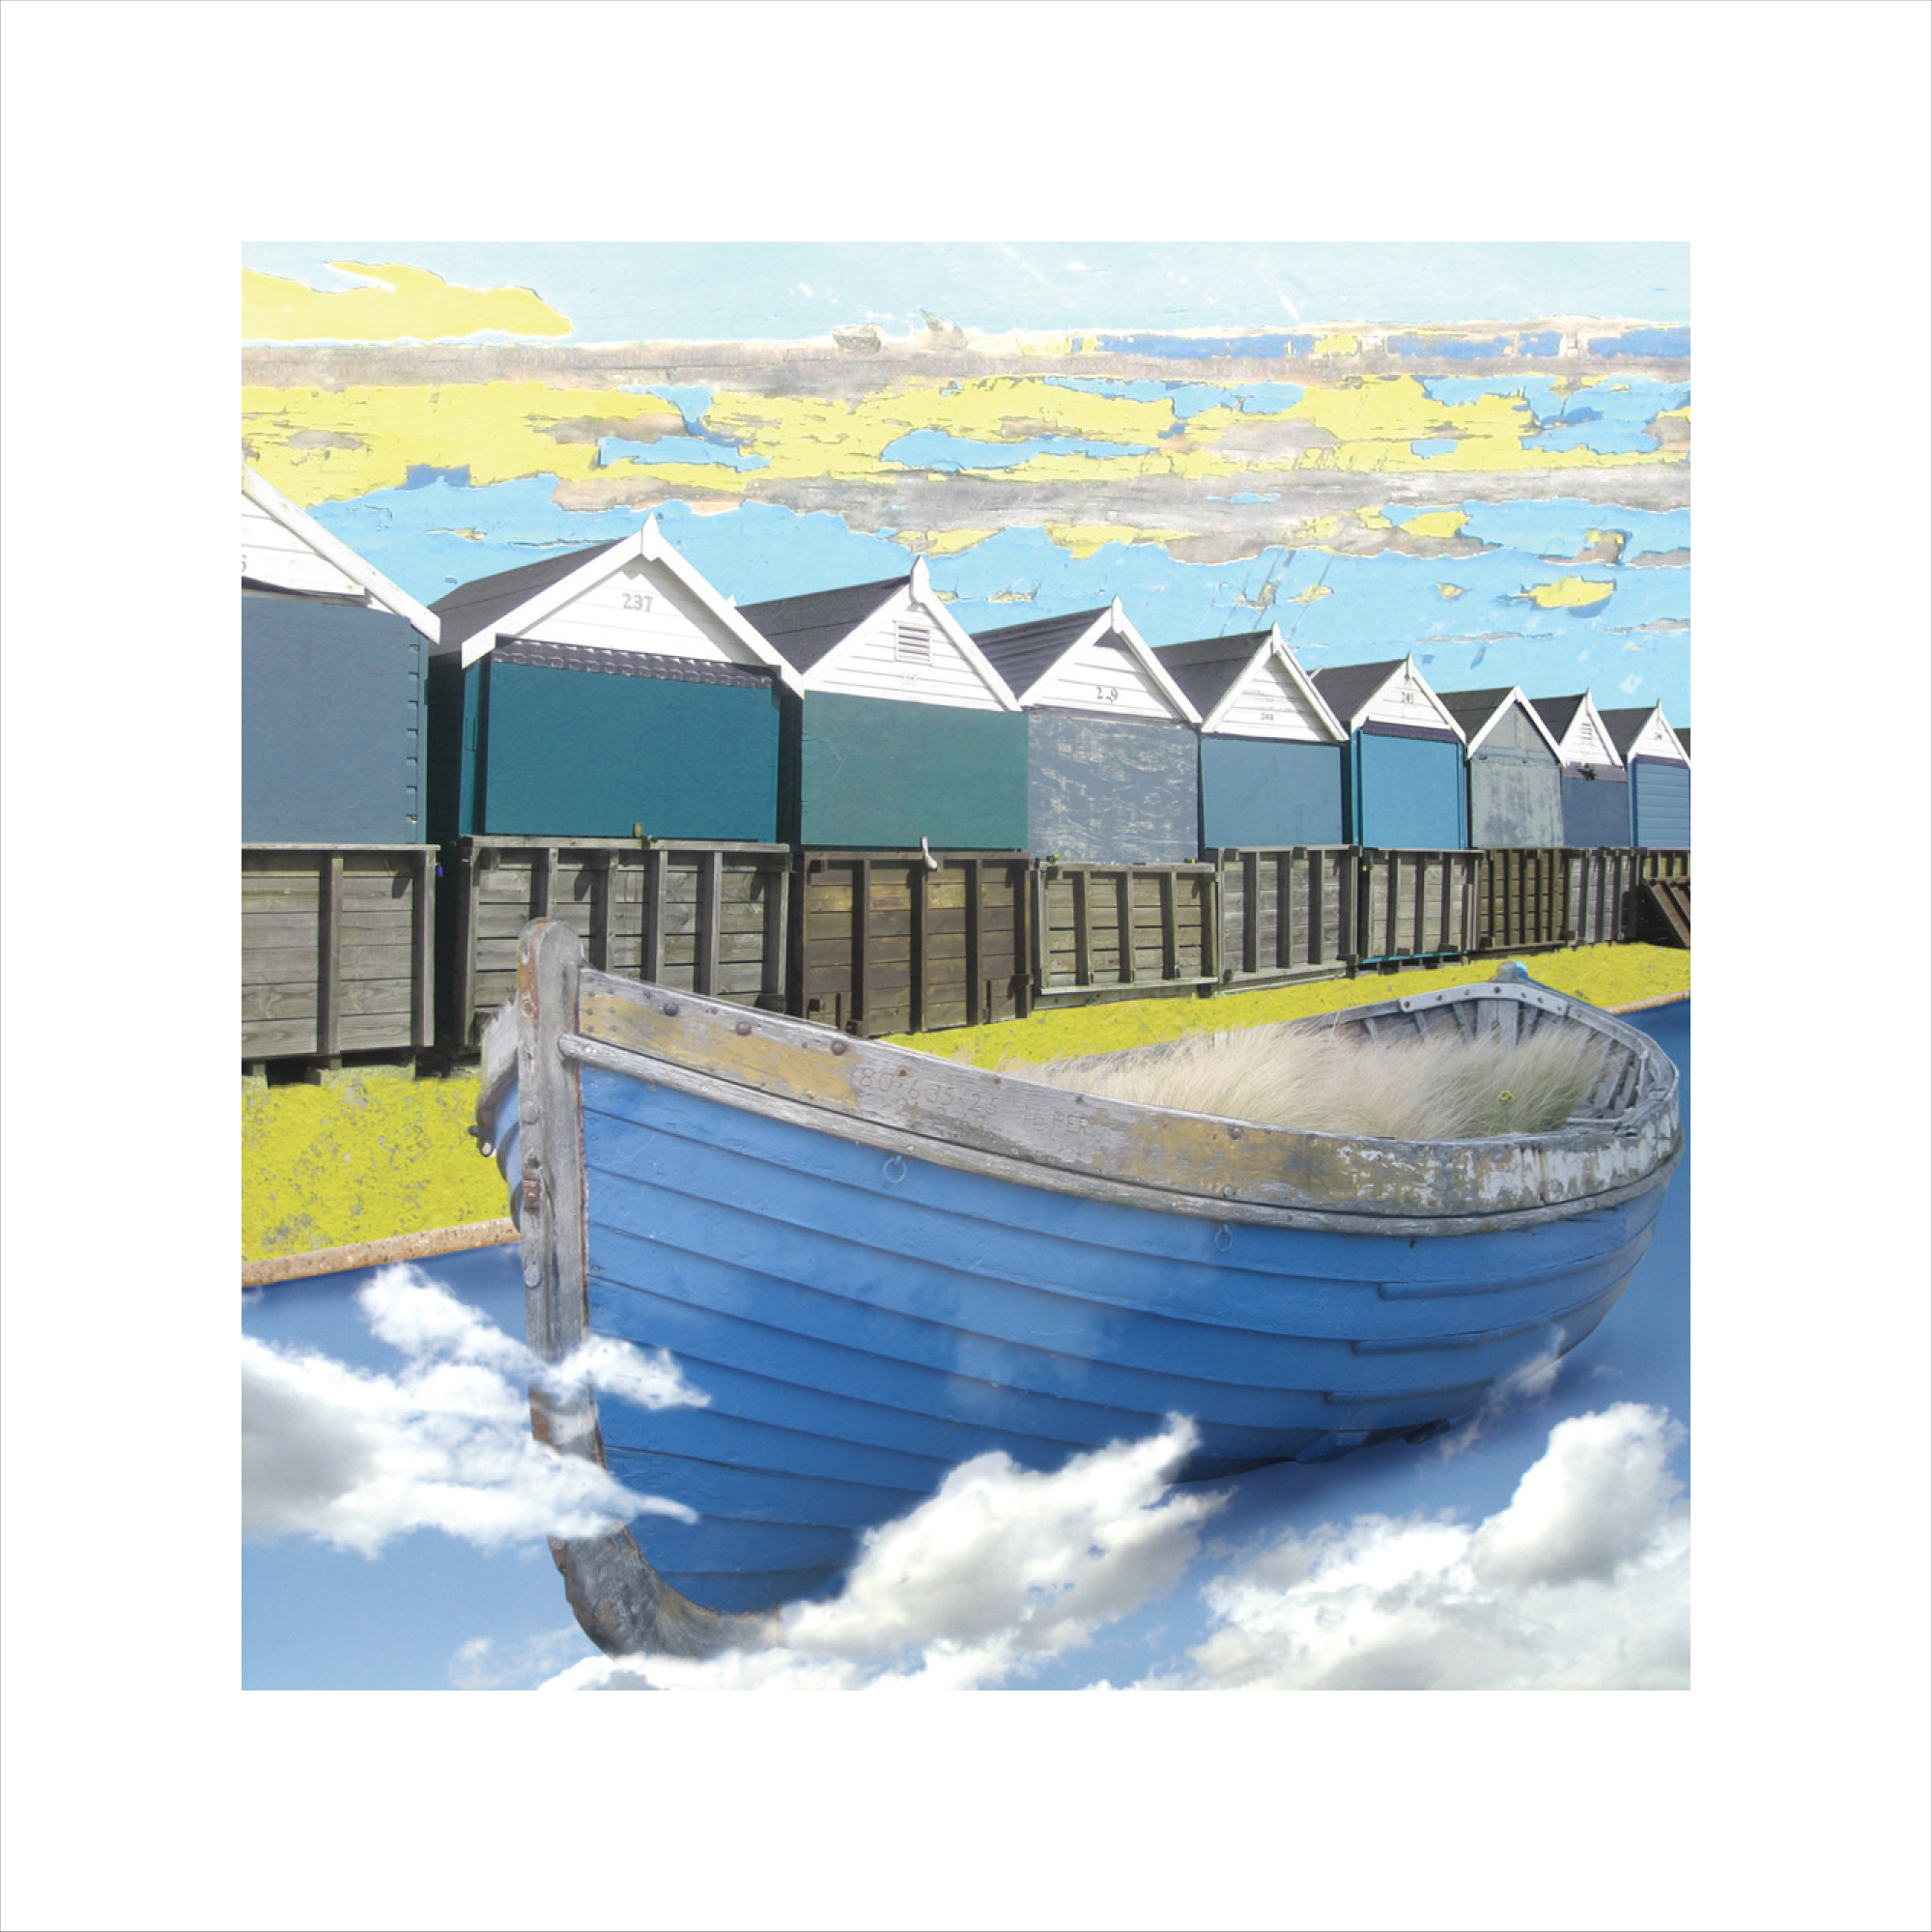 Claire Gill, Limited edition prints, digital photomontage, fine art prints, hahnemuhle, coastal art, Collect Art, seascape 3, Bournemouth, boat, clouds